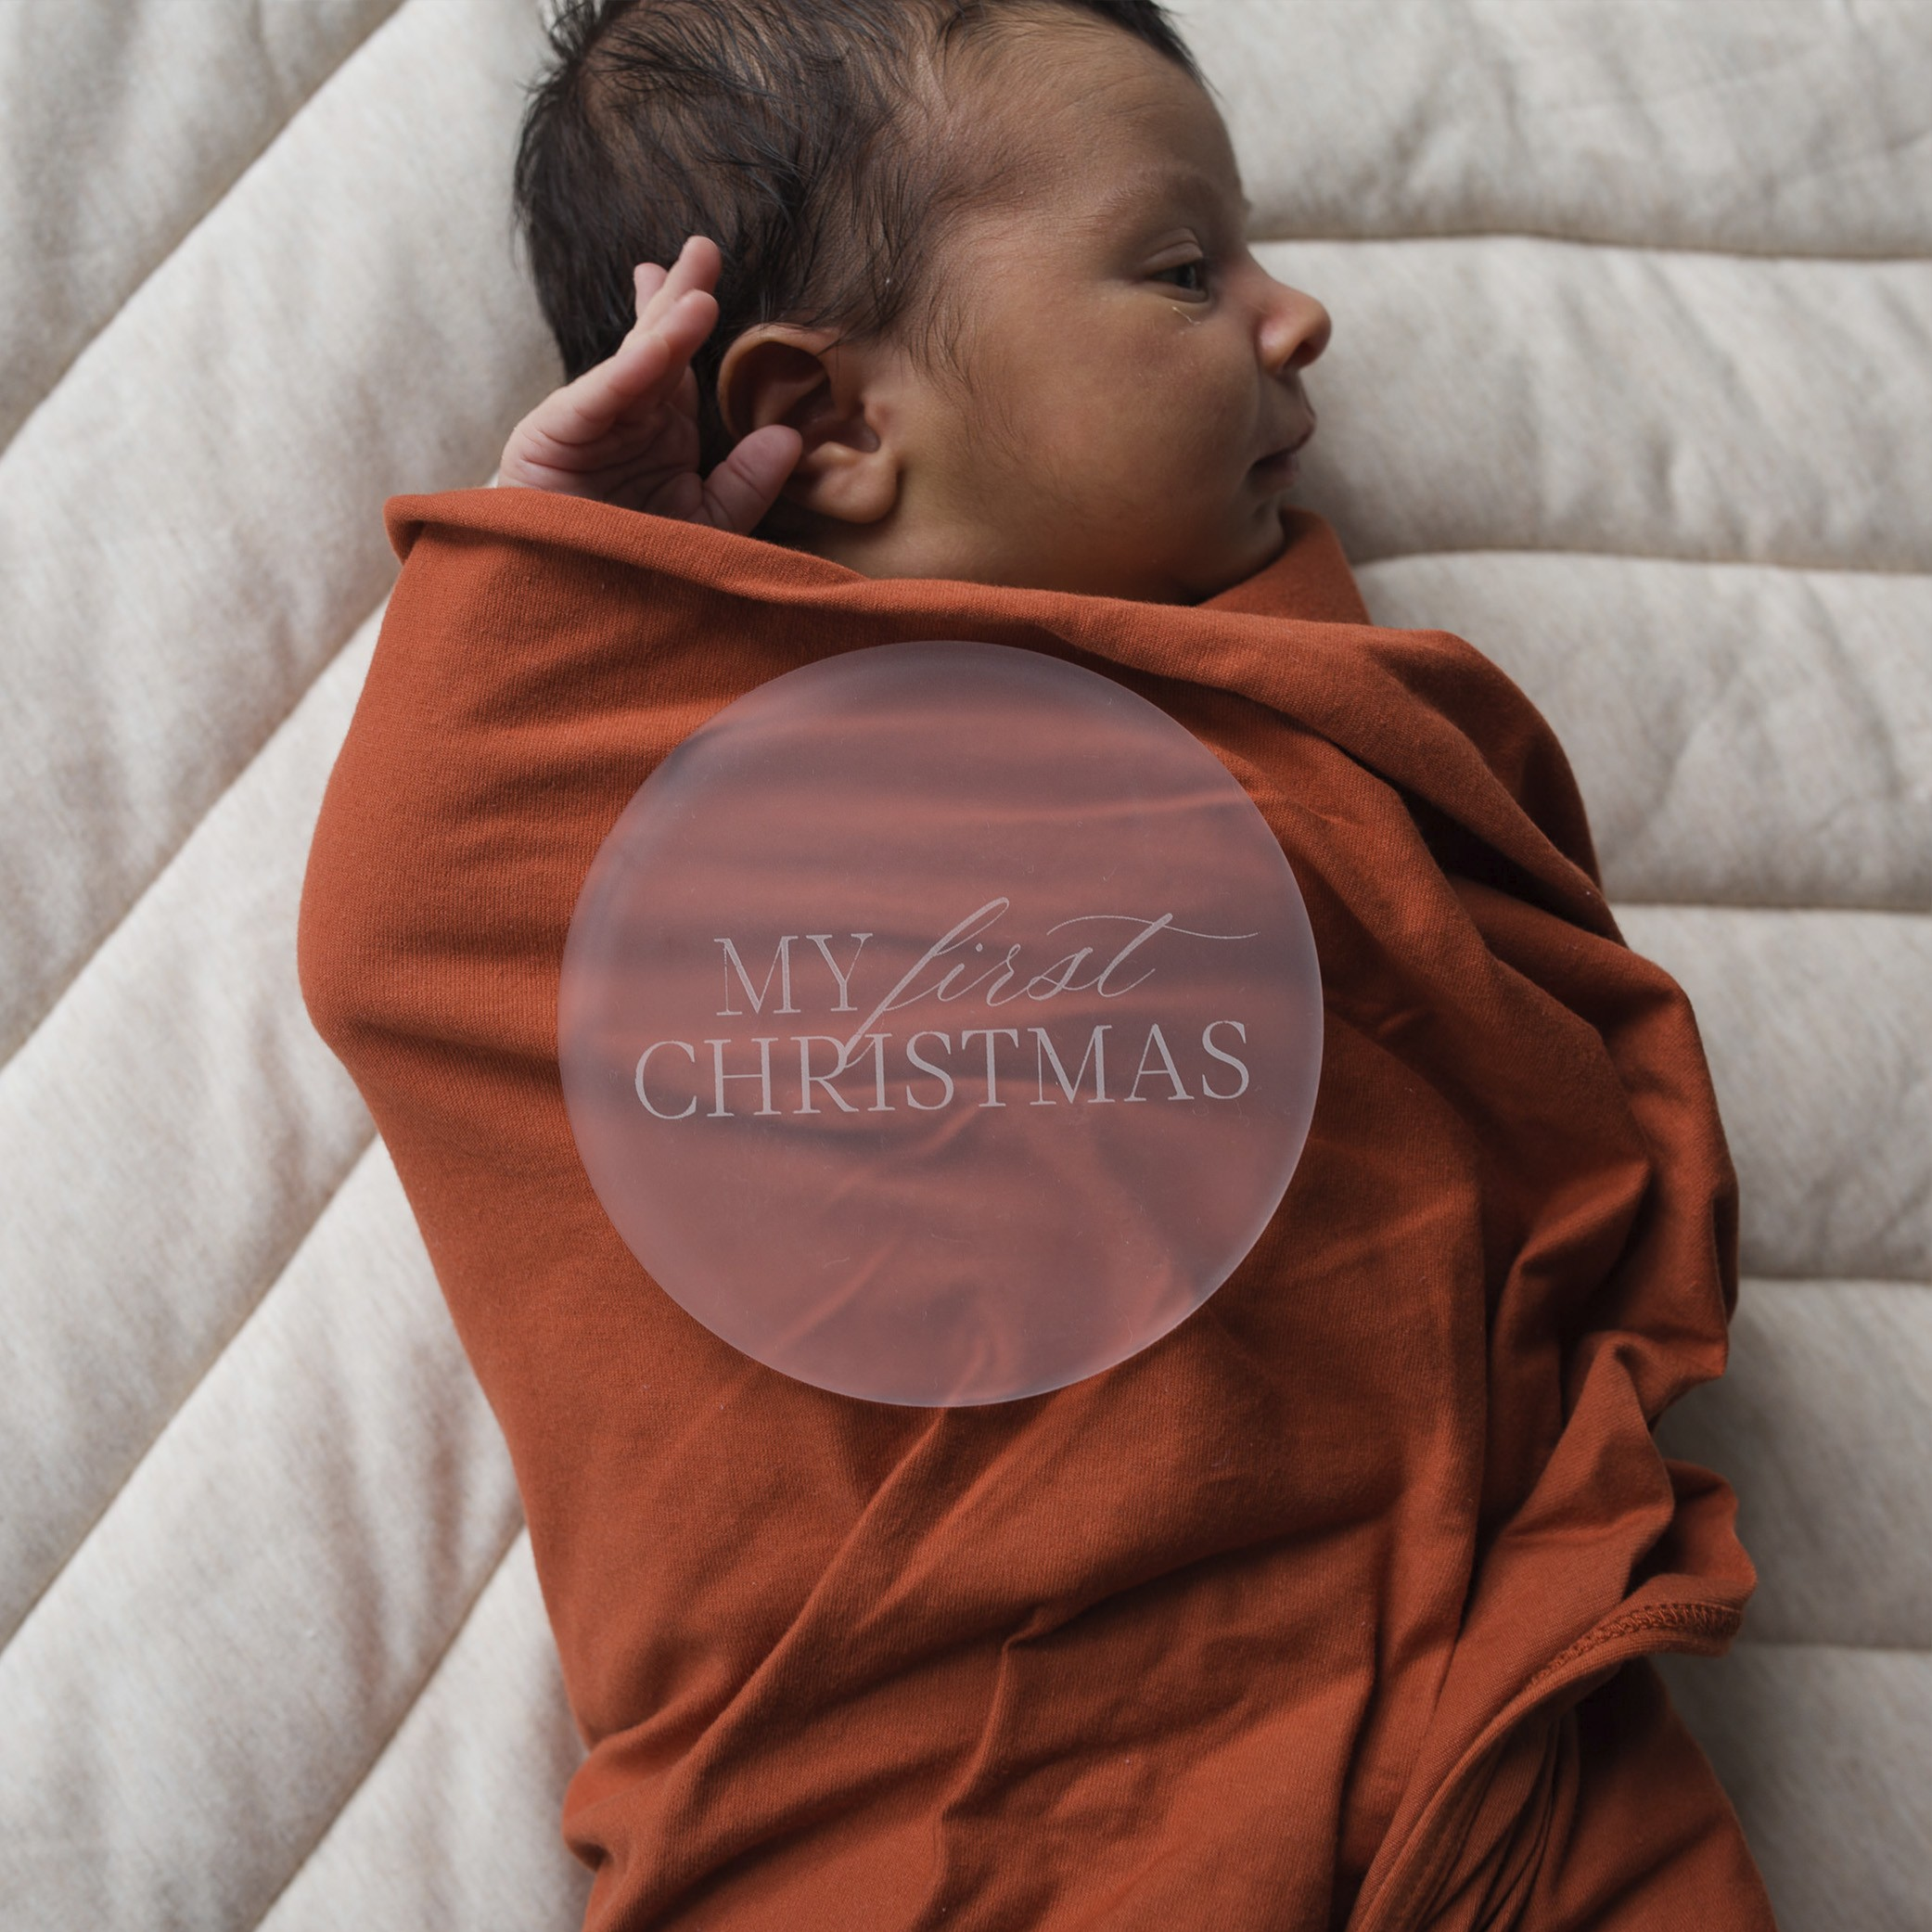 CHRISTMAS - My First Christmas   Frosted acrylic Milestone Plates